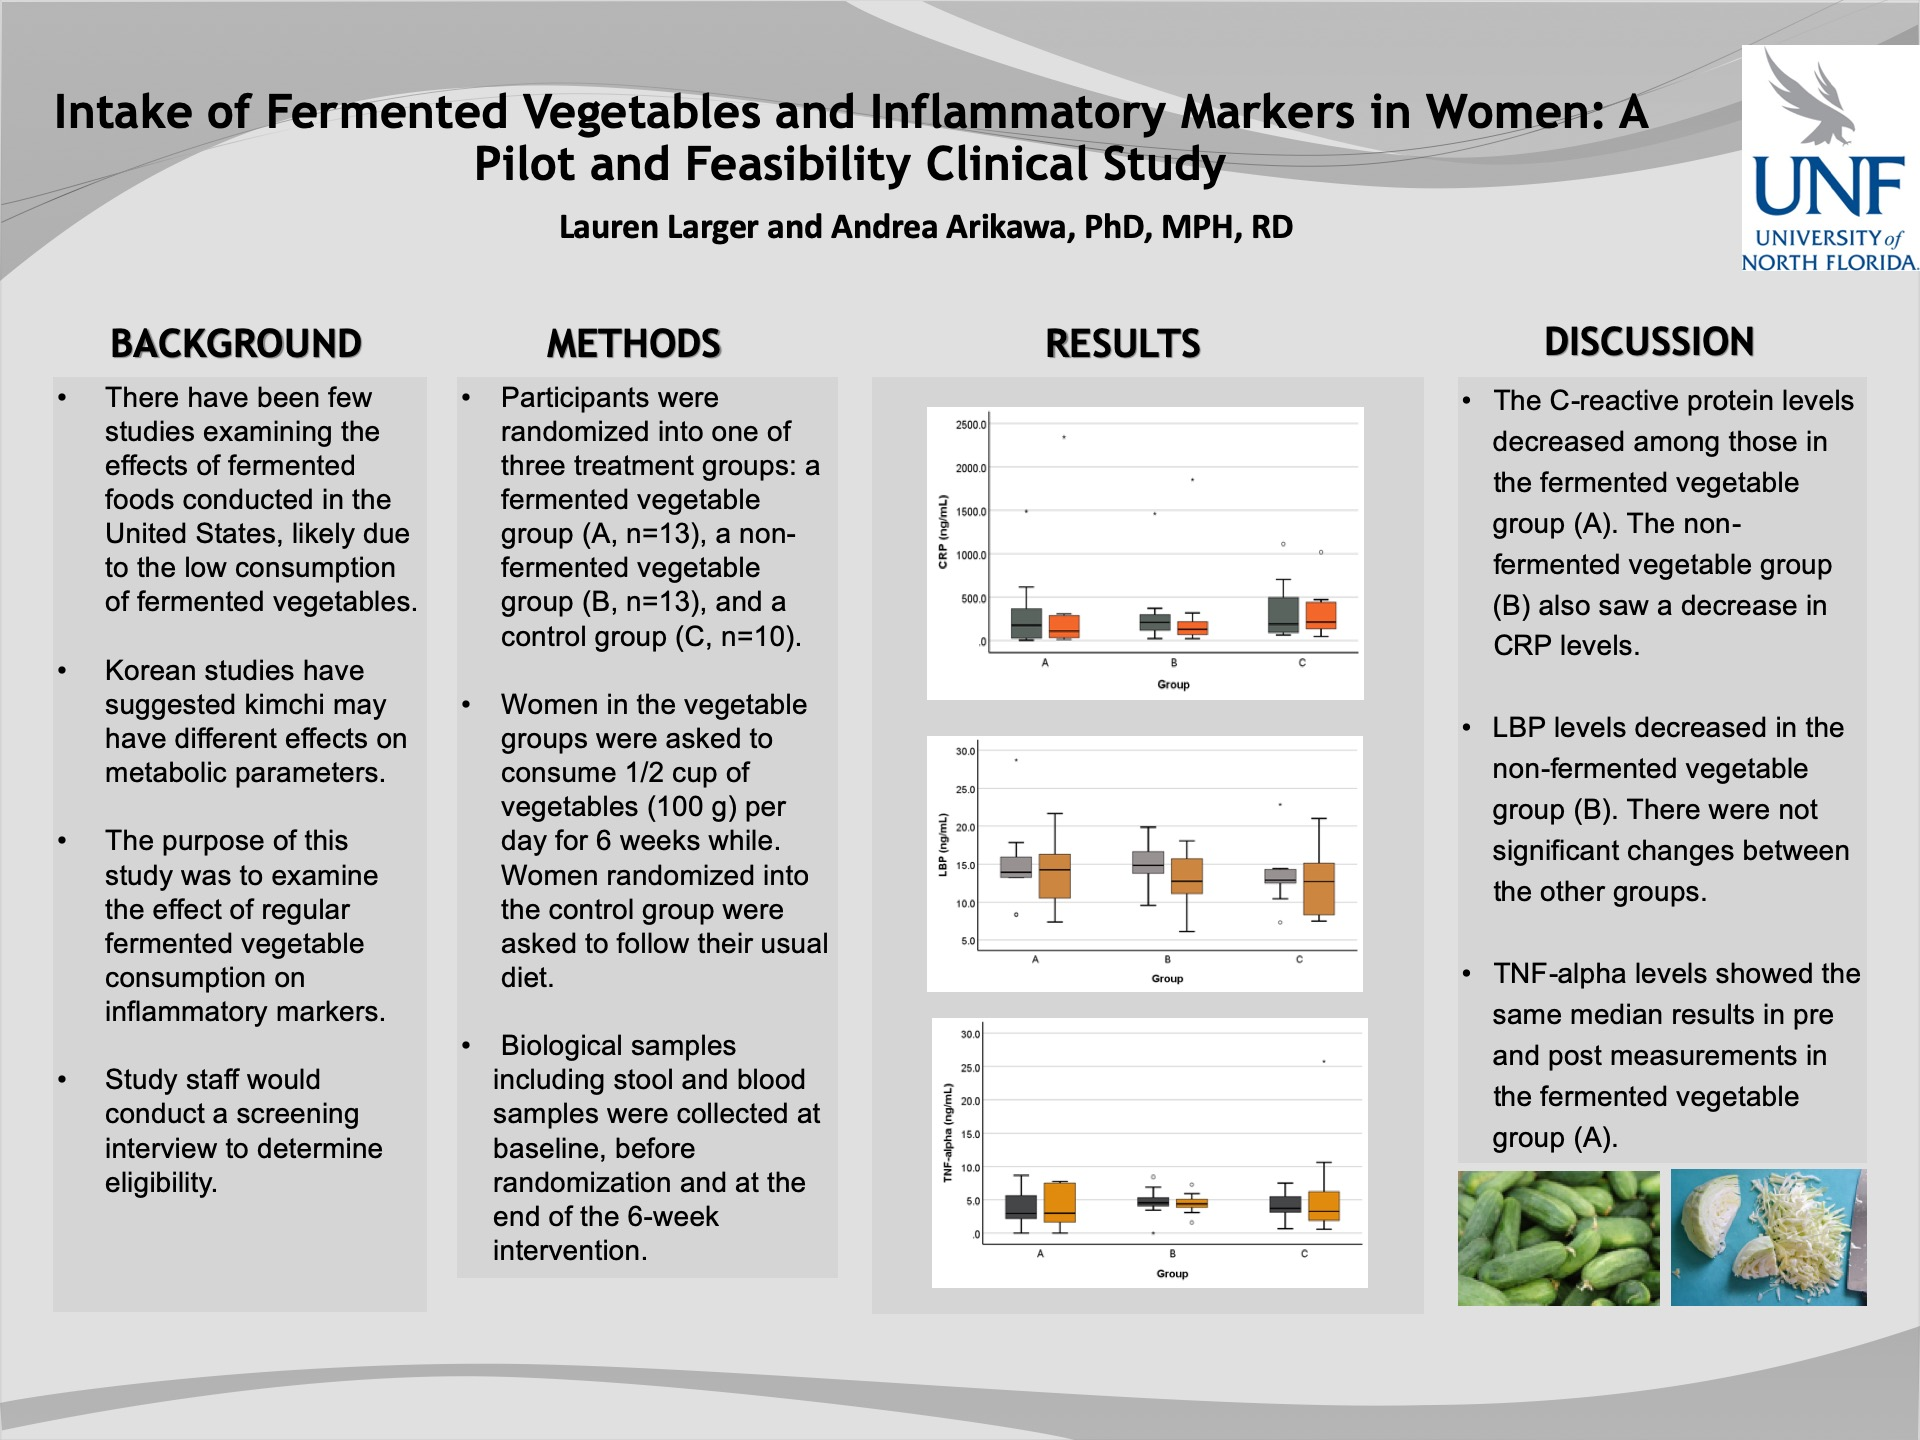 Intake of Fermented Vegetables and Inflammatory Markers in Women: A Pilot and Feasibility Clinical Study poster